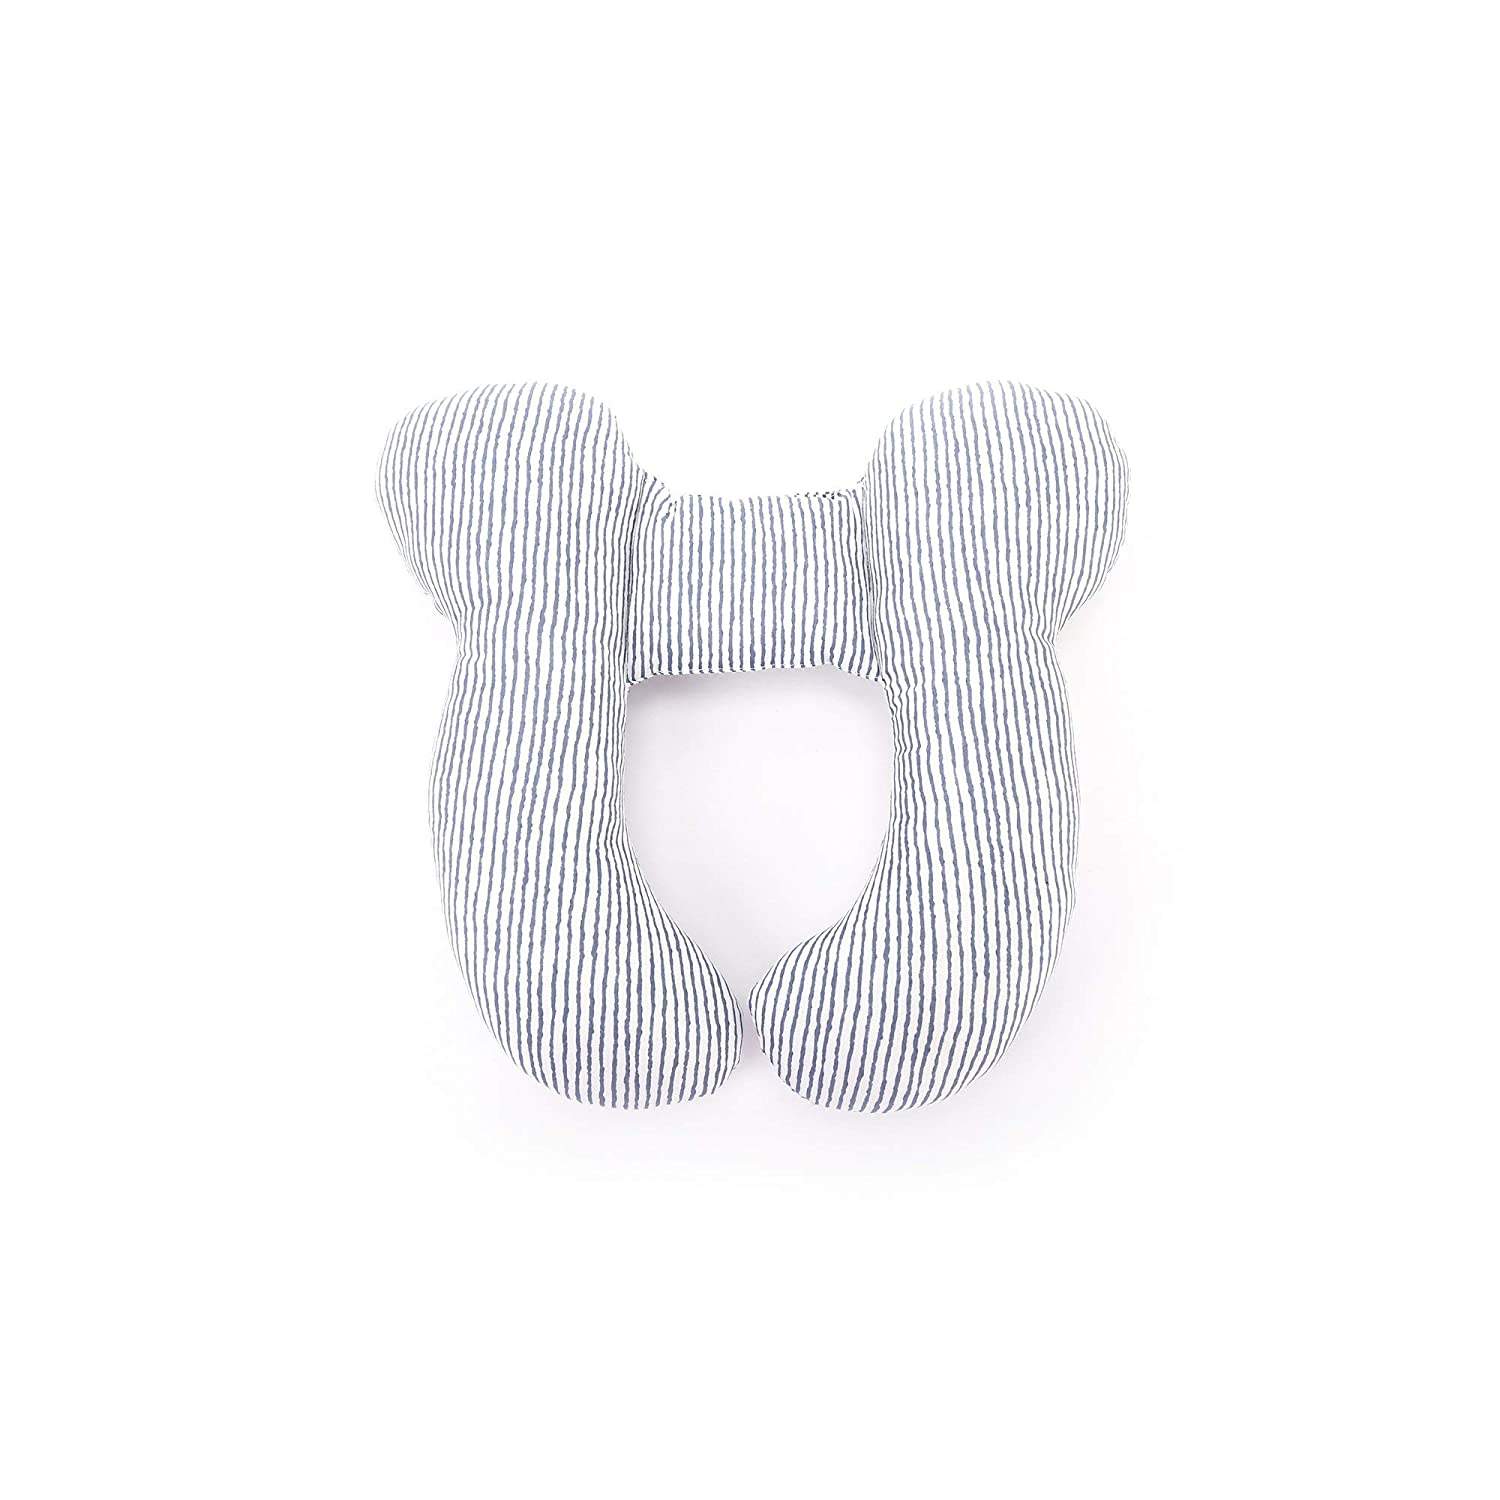 Neck /& Shoulder Support Baby Travel Pillow for Car Seat and Stroller Yellow//Grey Perry Mackin Certified Organic Cotton Infant Head